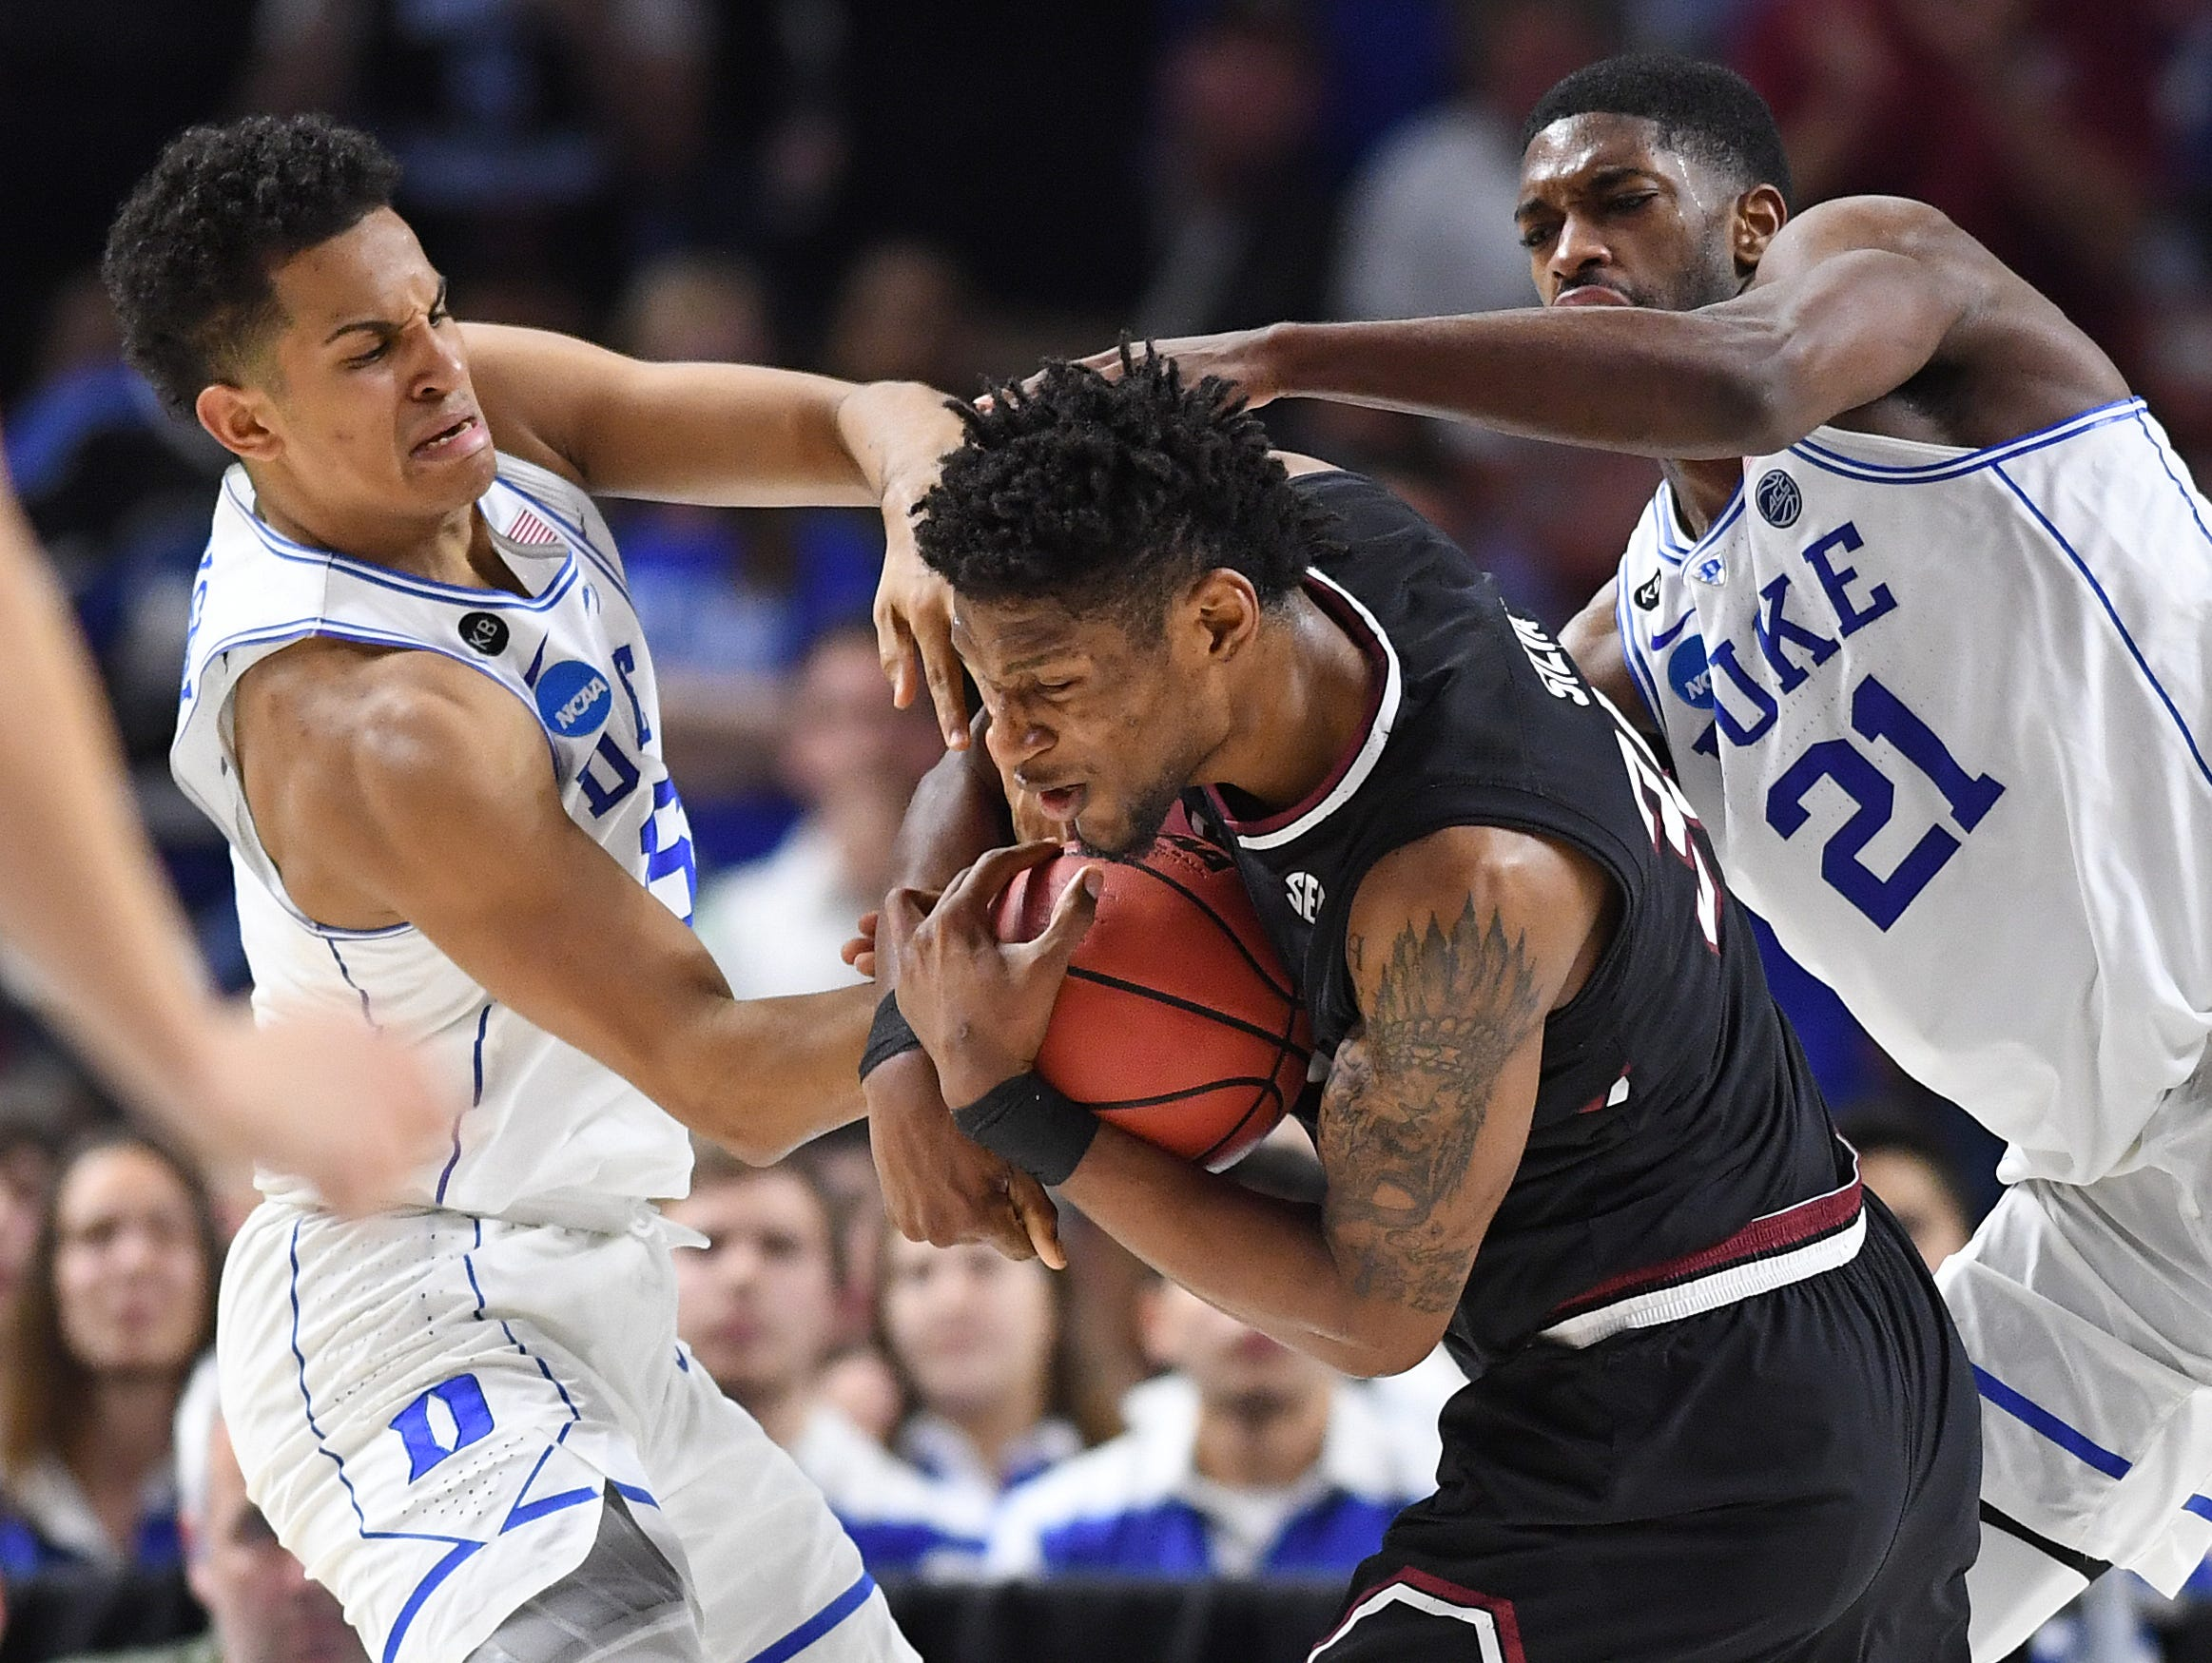 South Carolina forward Chris Silva (30) pulls down a rebound between Duke guard Frank Jackson (15), left, and forward Amile Jefferson (21) during the 2nd round of the NCAA Tournament at Bon Secours Wellness Arena in downtown Greenville on Sunday, March 19, 2017.